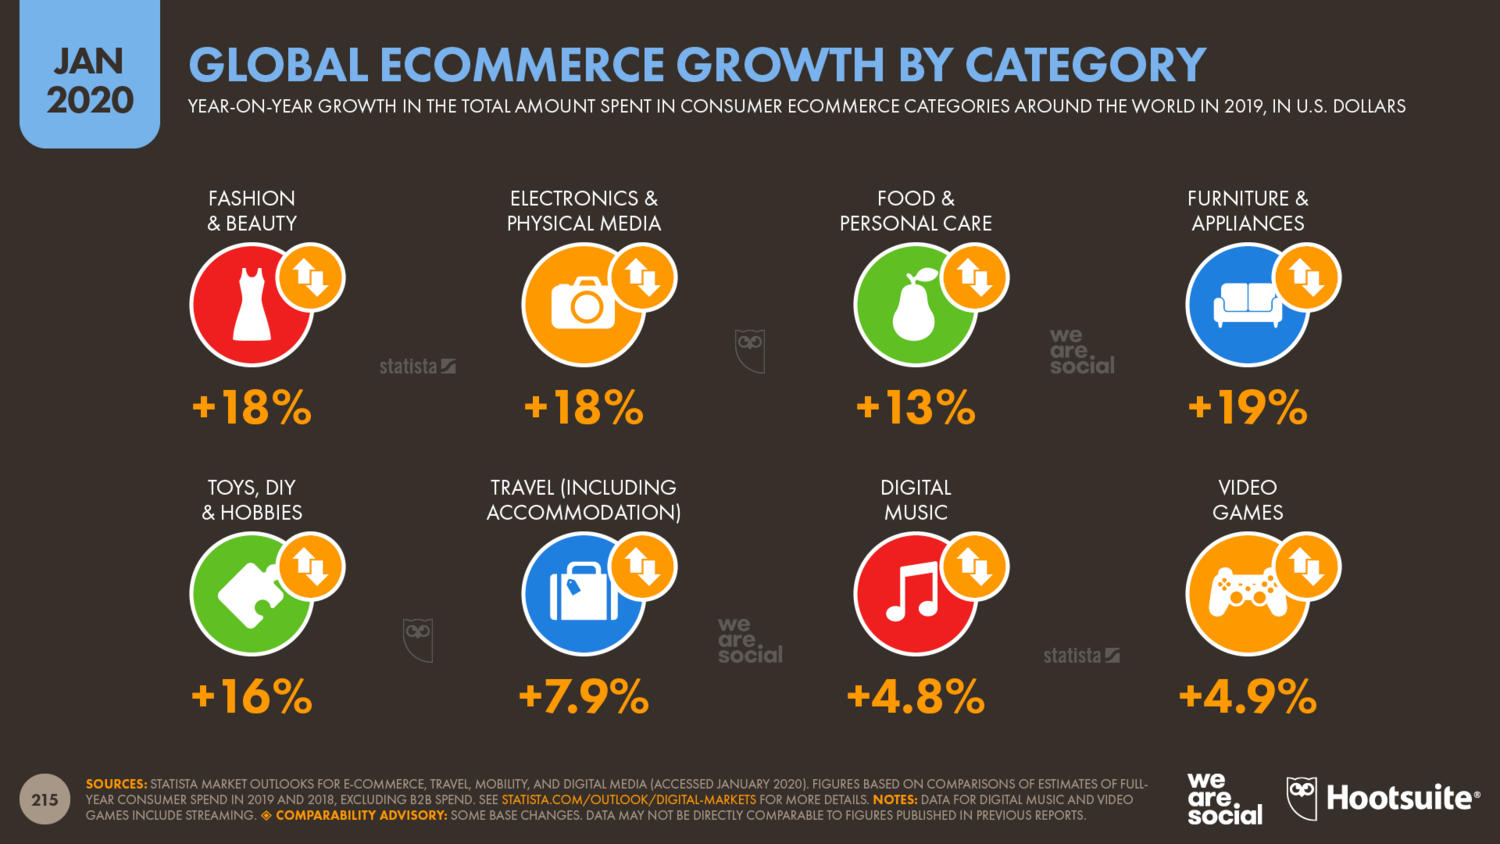 Annual+Ecommerce+Revenue+Growth+by+Category+January+2020+DataReportal